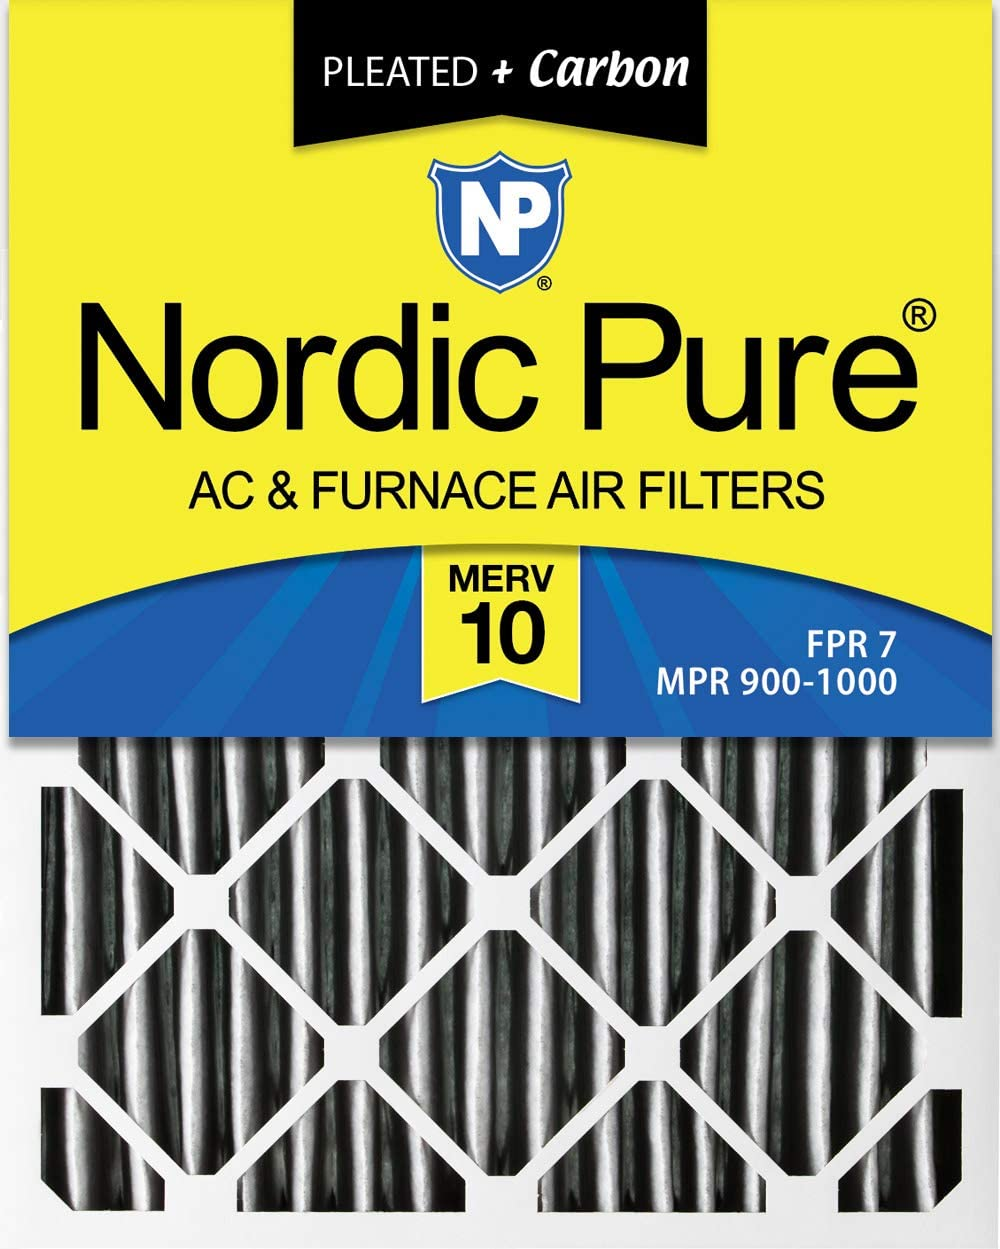 Nordic Pure 20x22x1 MERV 10 Pleated AC Furnace Air Filters 4 Pack